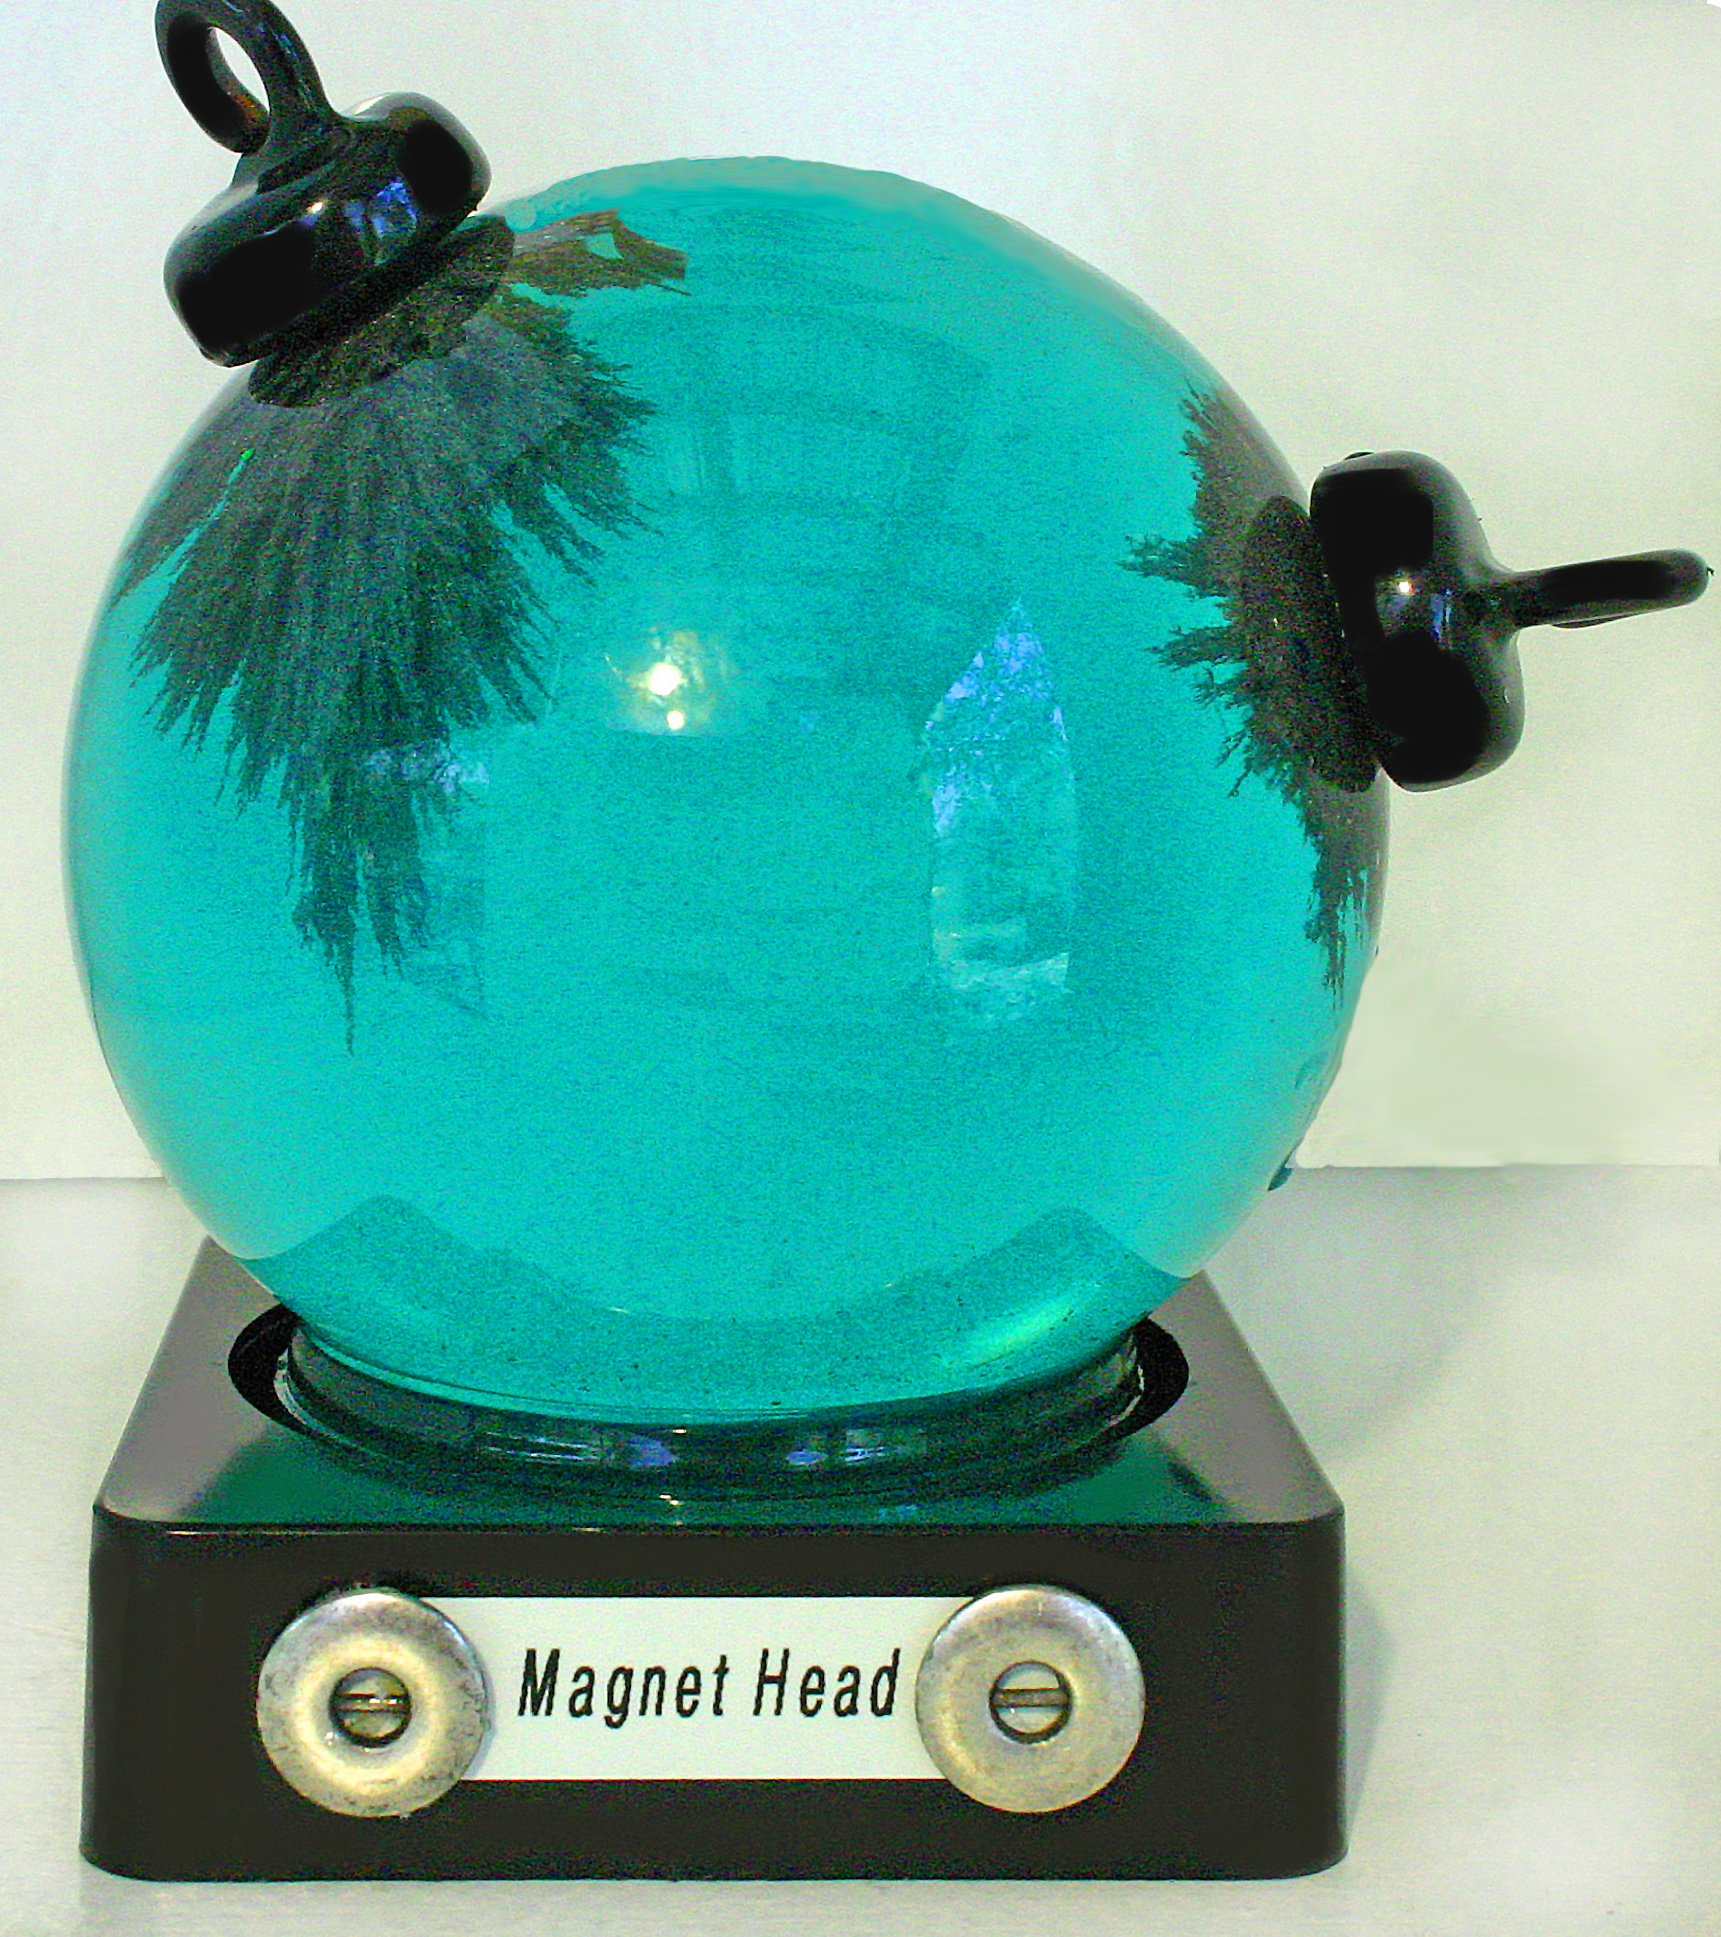 Magnet Head